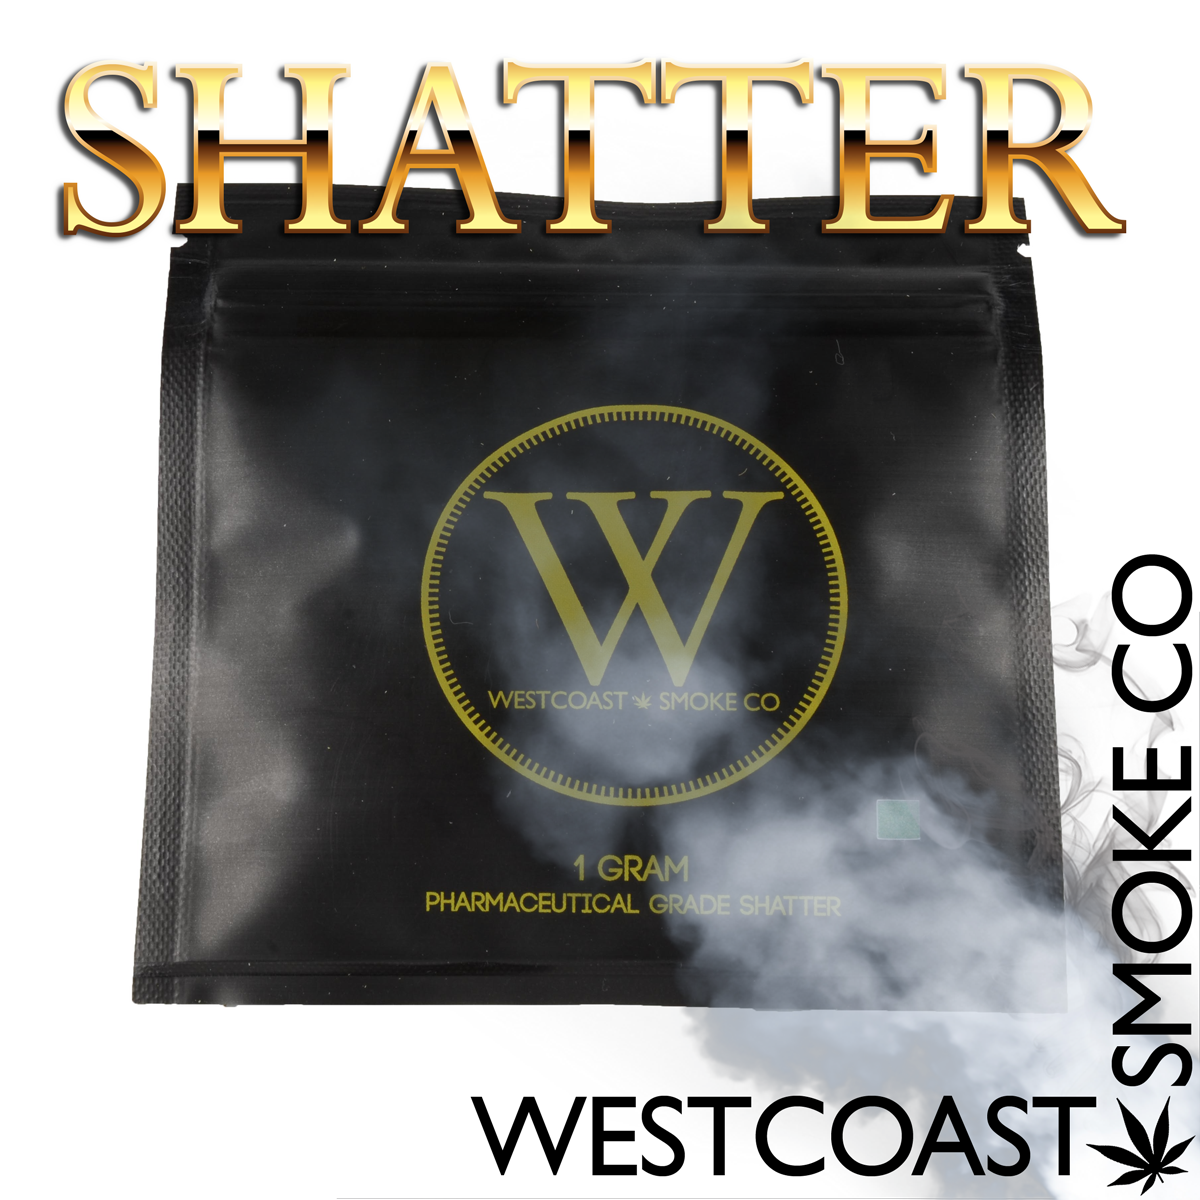 West Coast Smoke Co. Shatter by BC Bud Store - Image © 2019 BC Bud Store. All Rights Reserved.